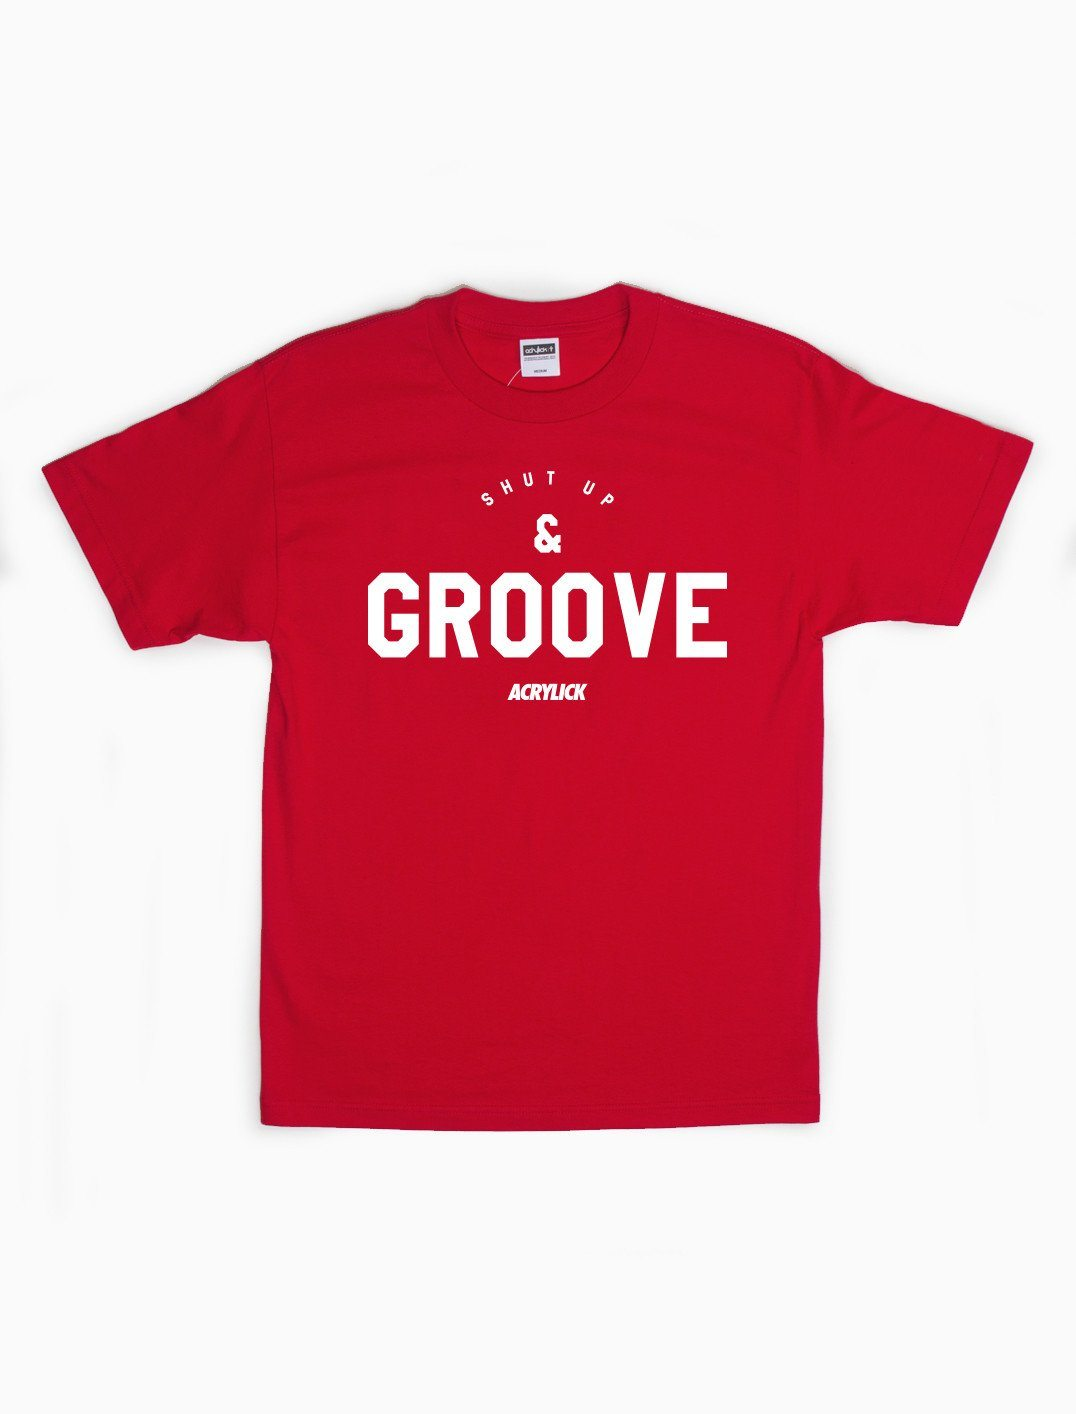 Acrylick - Shut Up and Groove Tee